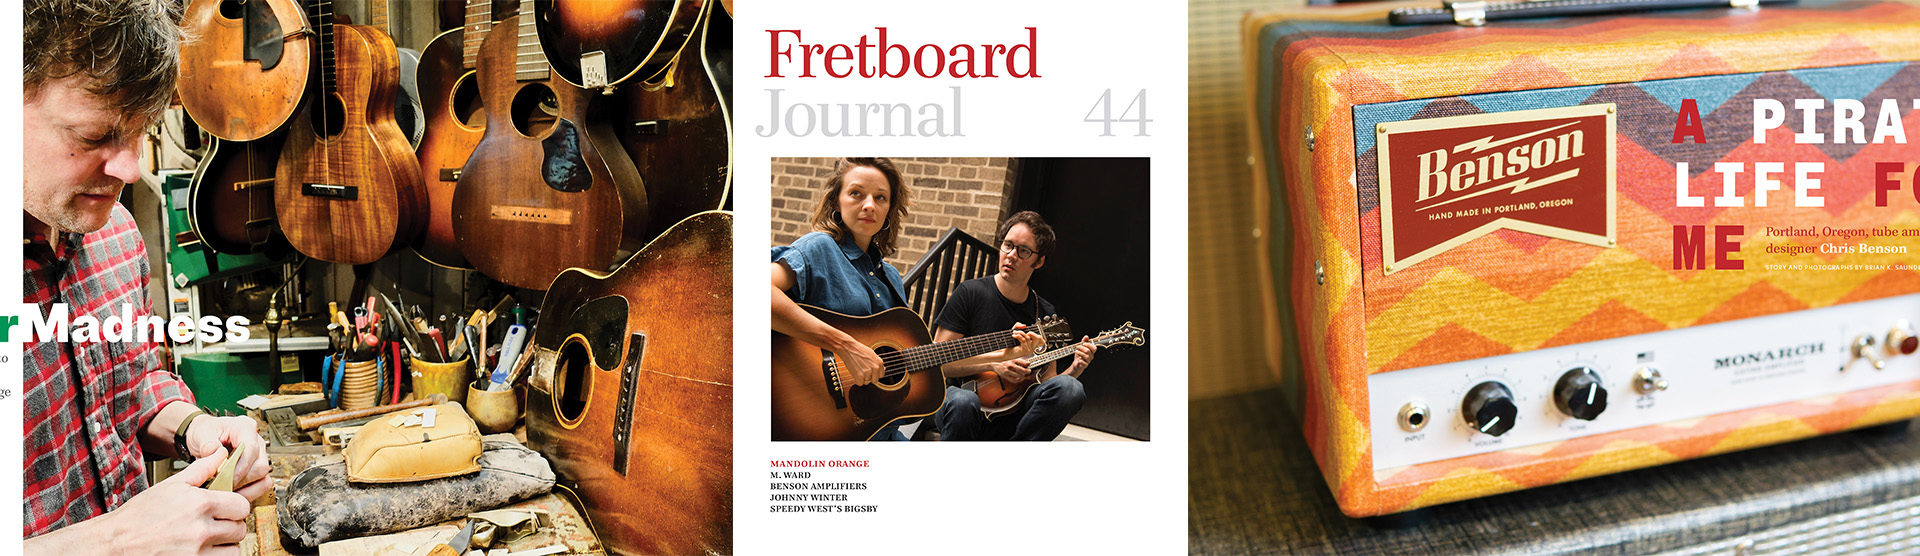 Fretboard Journal | The official home of the Fretboard